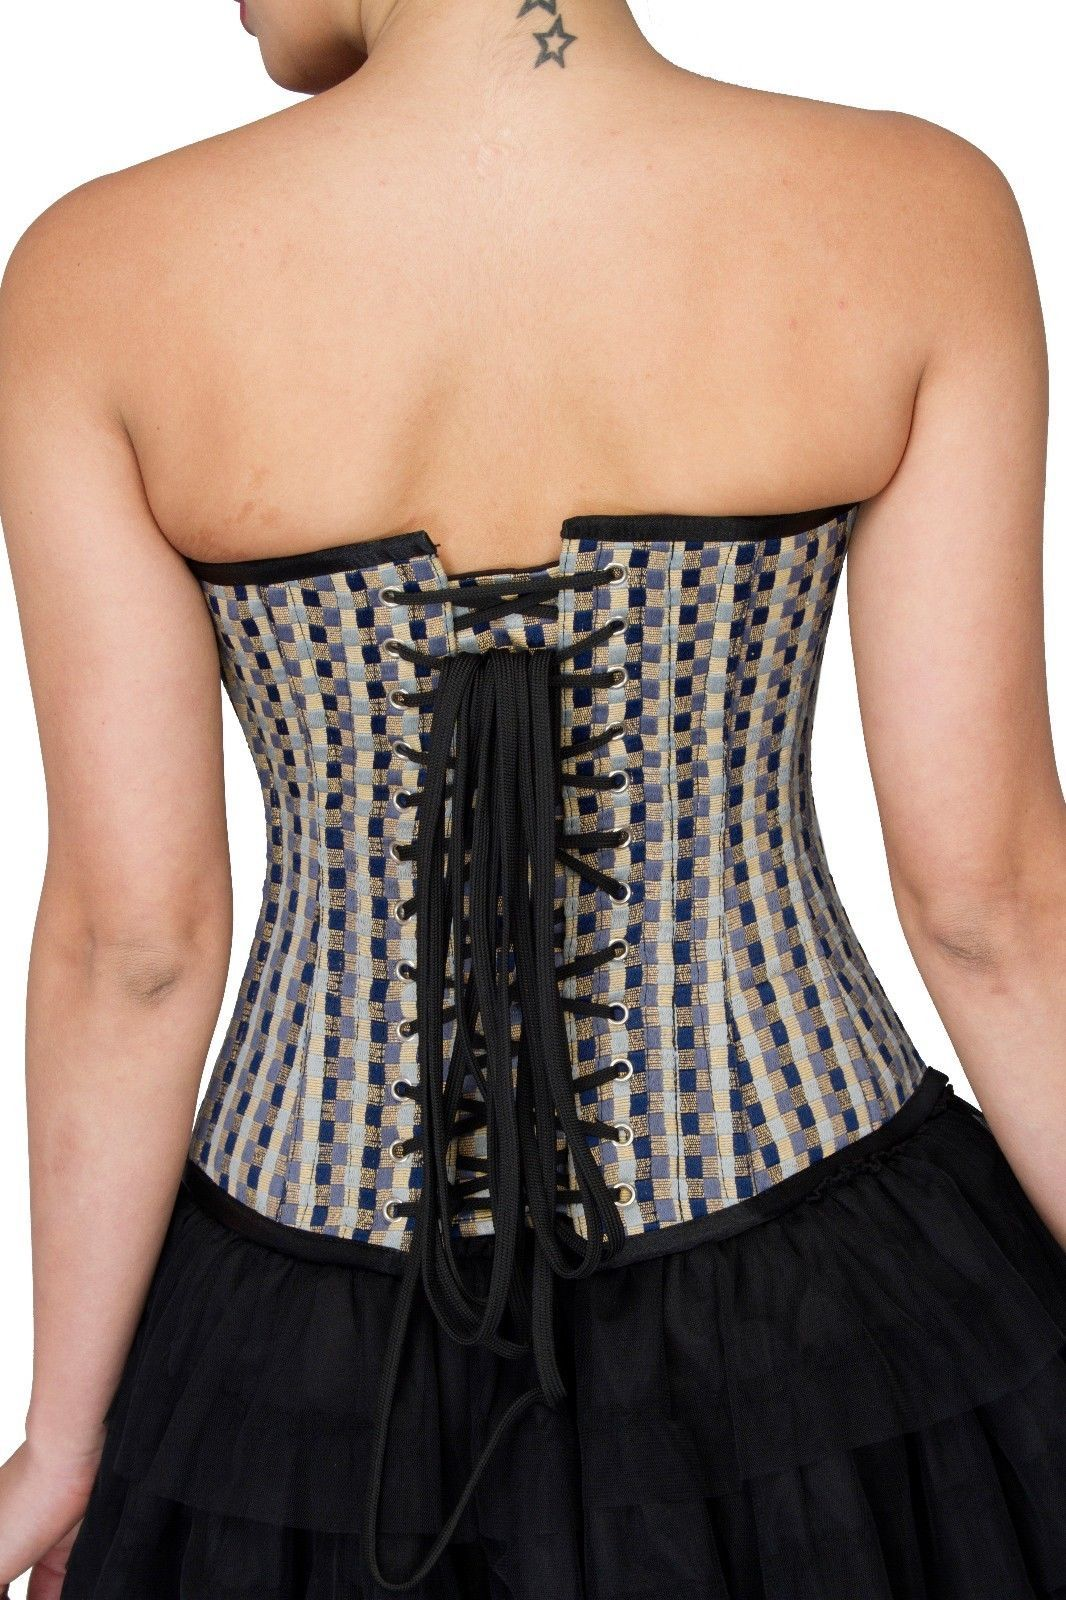 Black White Check Polyester Halloween Costume Gothic Bustier Overbust Corset Top